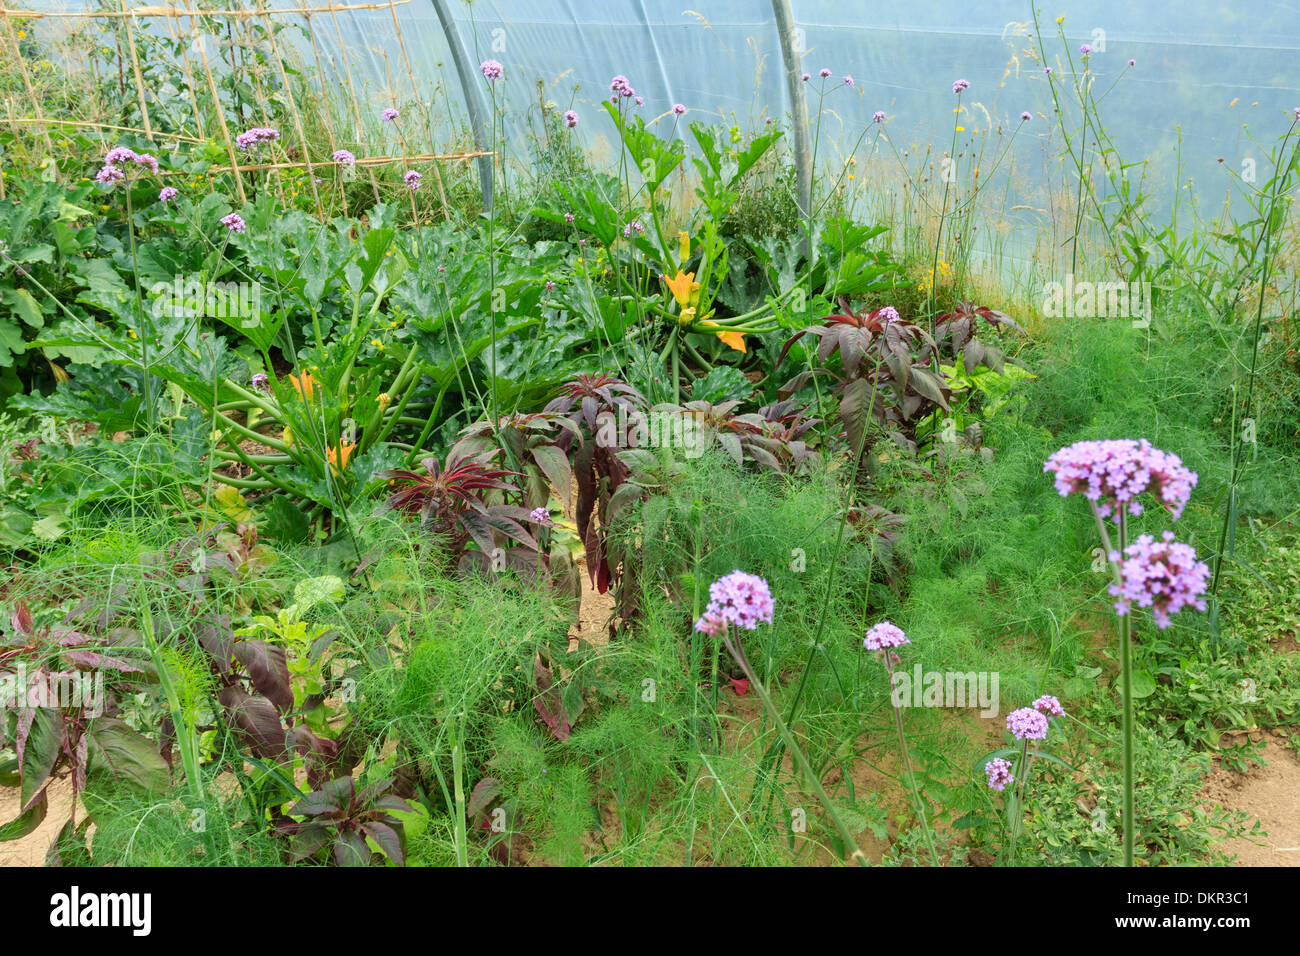 Serre Tunnel Svl Potager Garden Stock Photos Potager Garden Stock Images Alamy